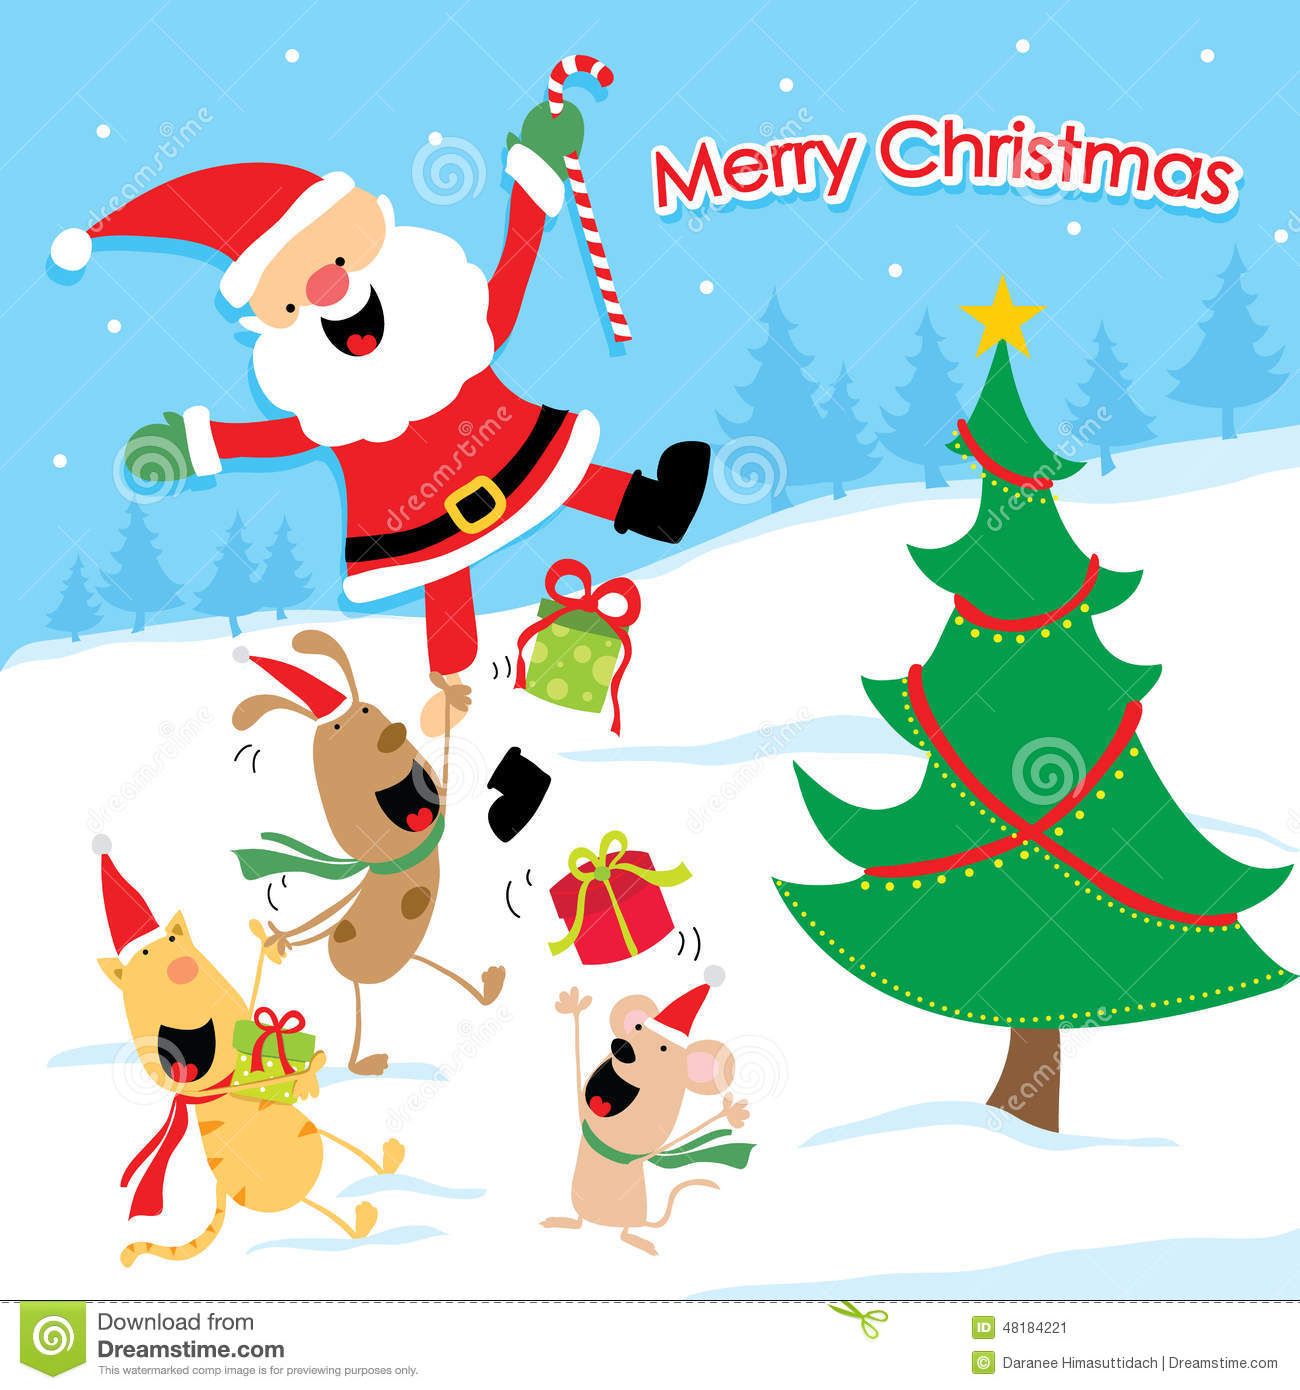 merry christmas cartoon vector illustration 48184221 megapixl - Christmas Cartoon Pictures